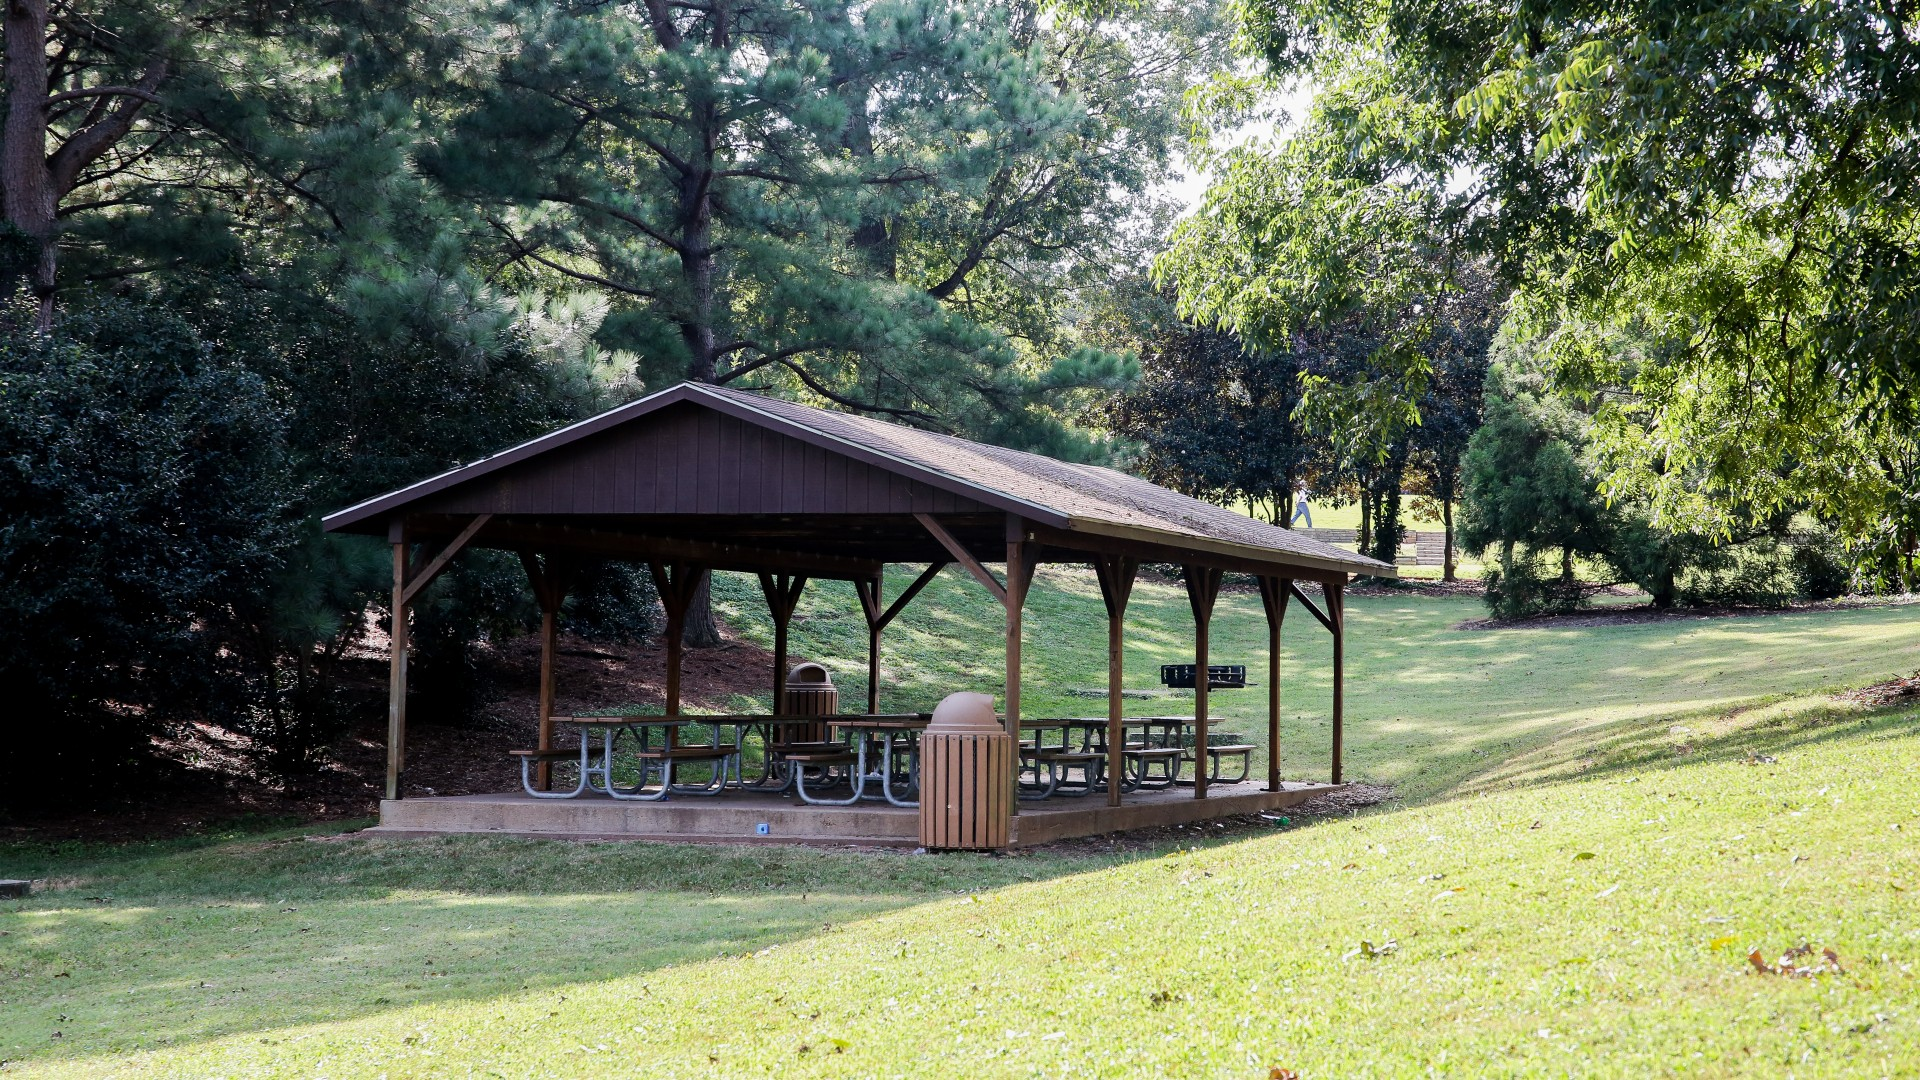 A large outdoor picnic shelter with eight tables